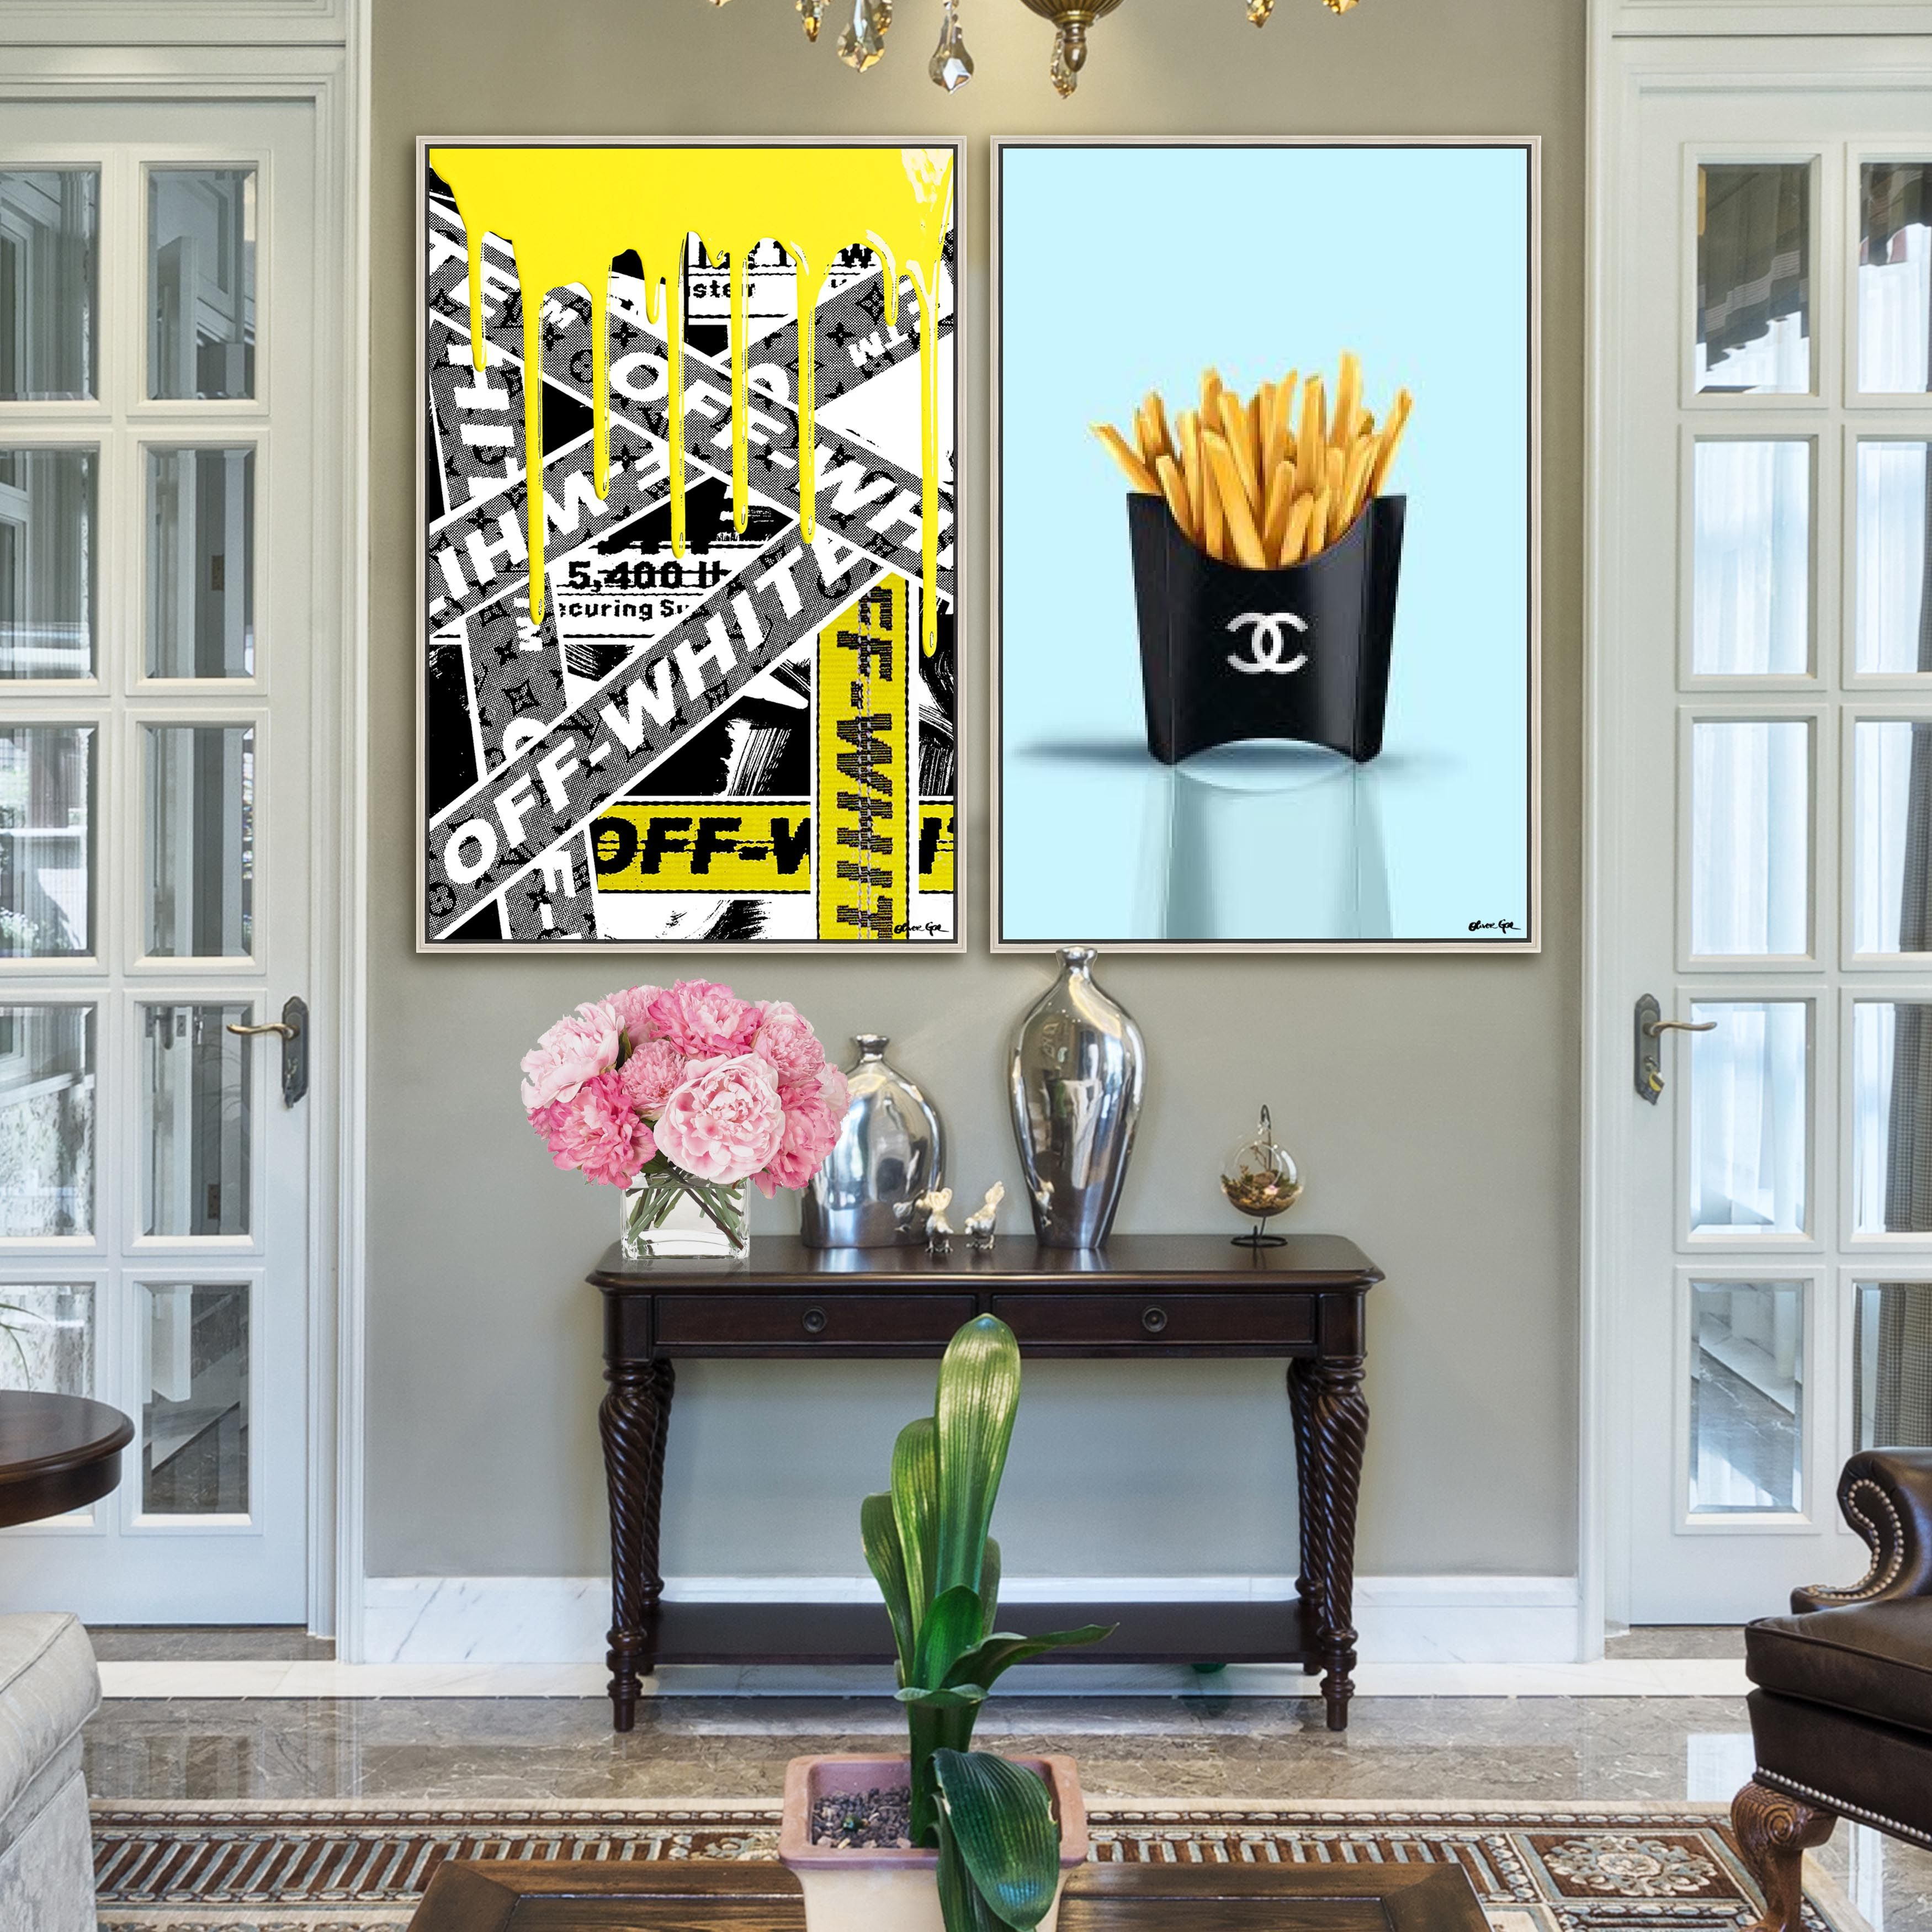 Chanel Fries And Off White Wall Decor Colorful Wall Art Fashion Wall Art White Wall Decor